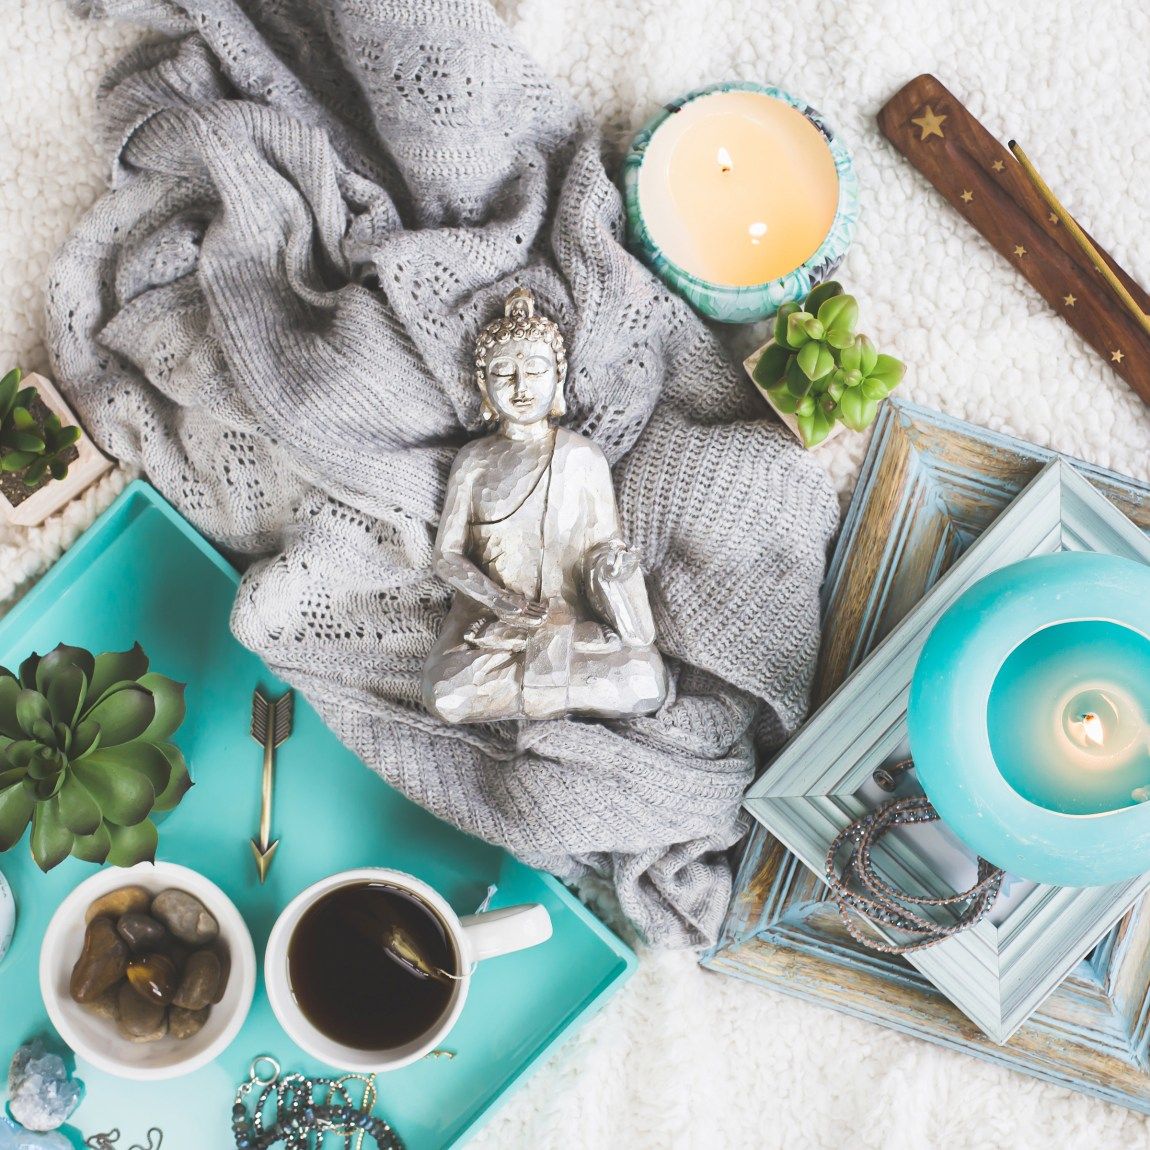 5 Essential Items To Create A Peaceful #Meditation Nook. Simple & #easy items for any #mom or #bossbabe who needs a quiet, #zen space to #calm their mind! These #DIY #ideas are seriously easy to put in any small space at #home. #homedecor #meditation #mindset #mindset #soul #peace